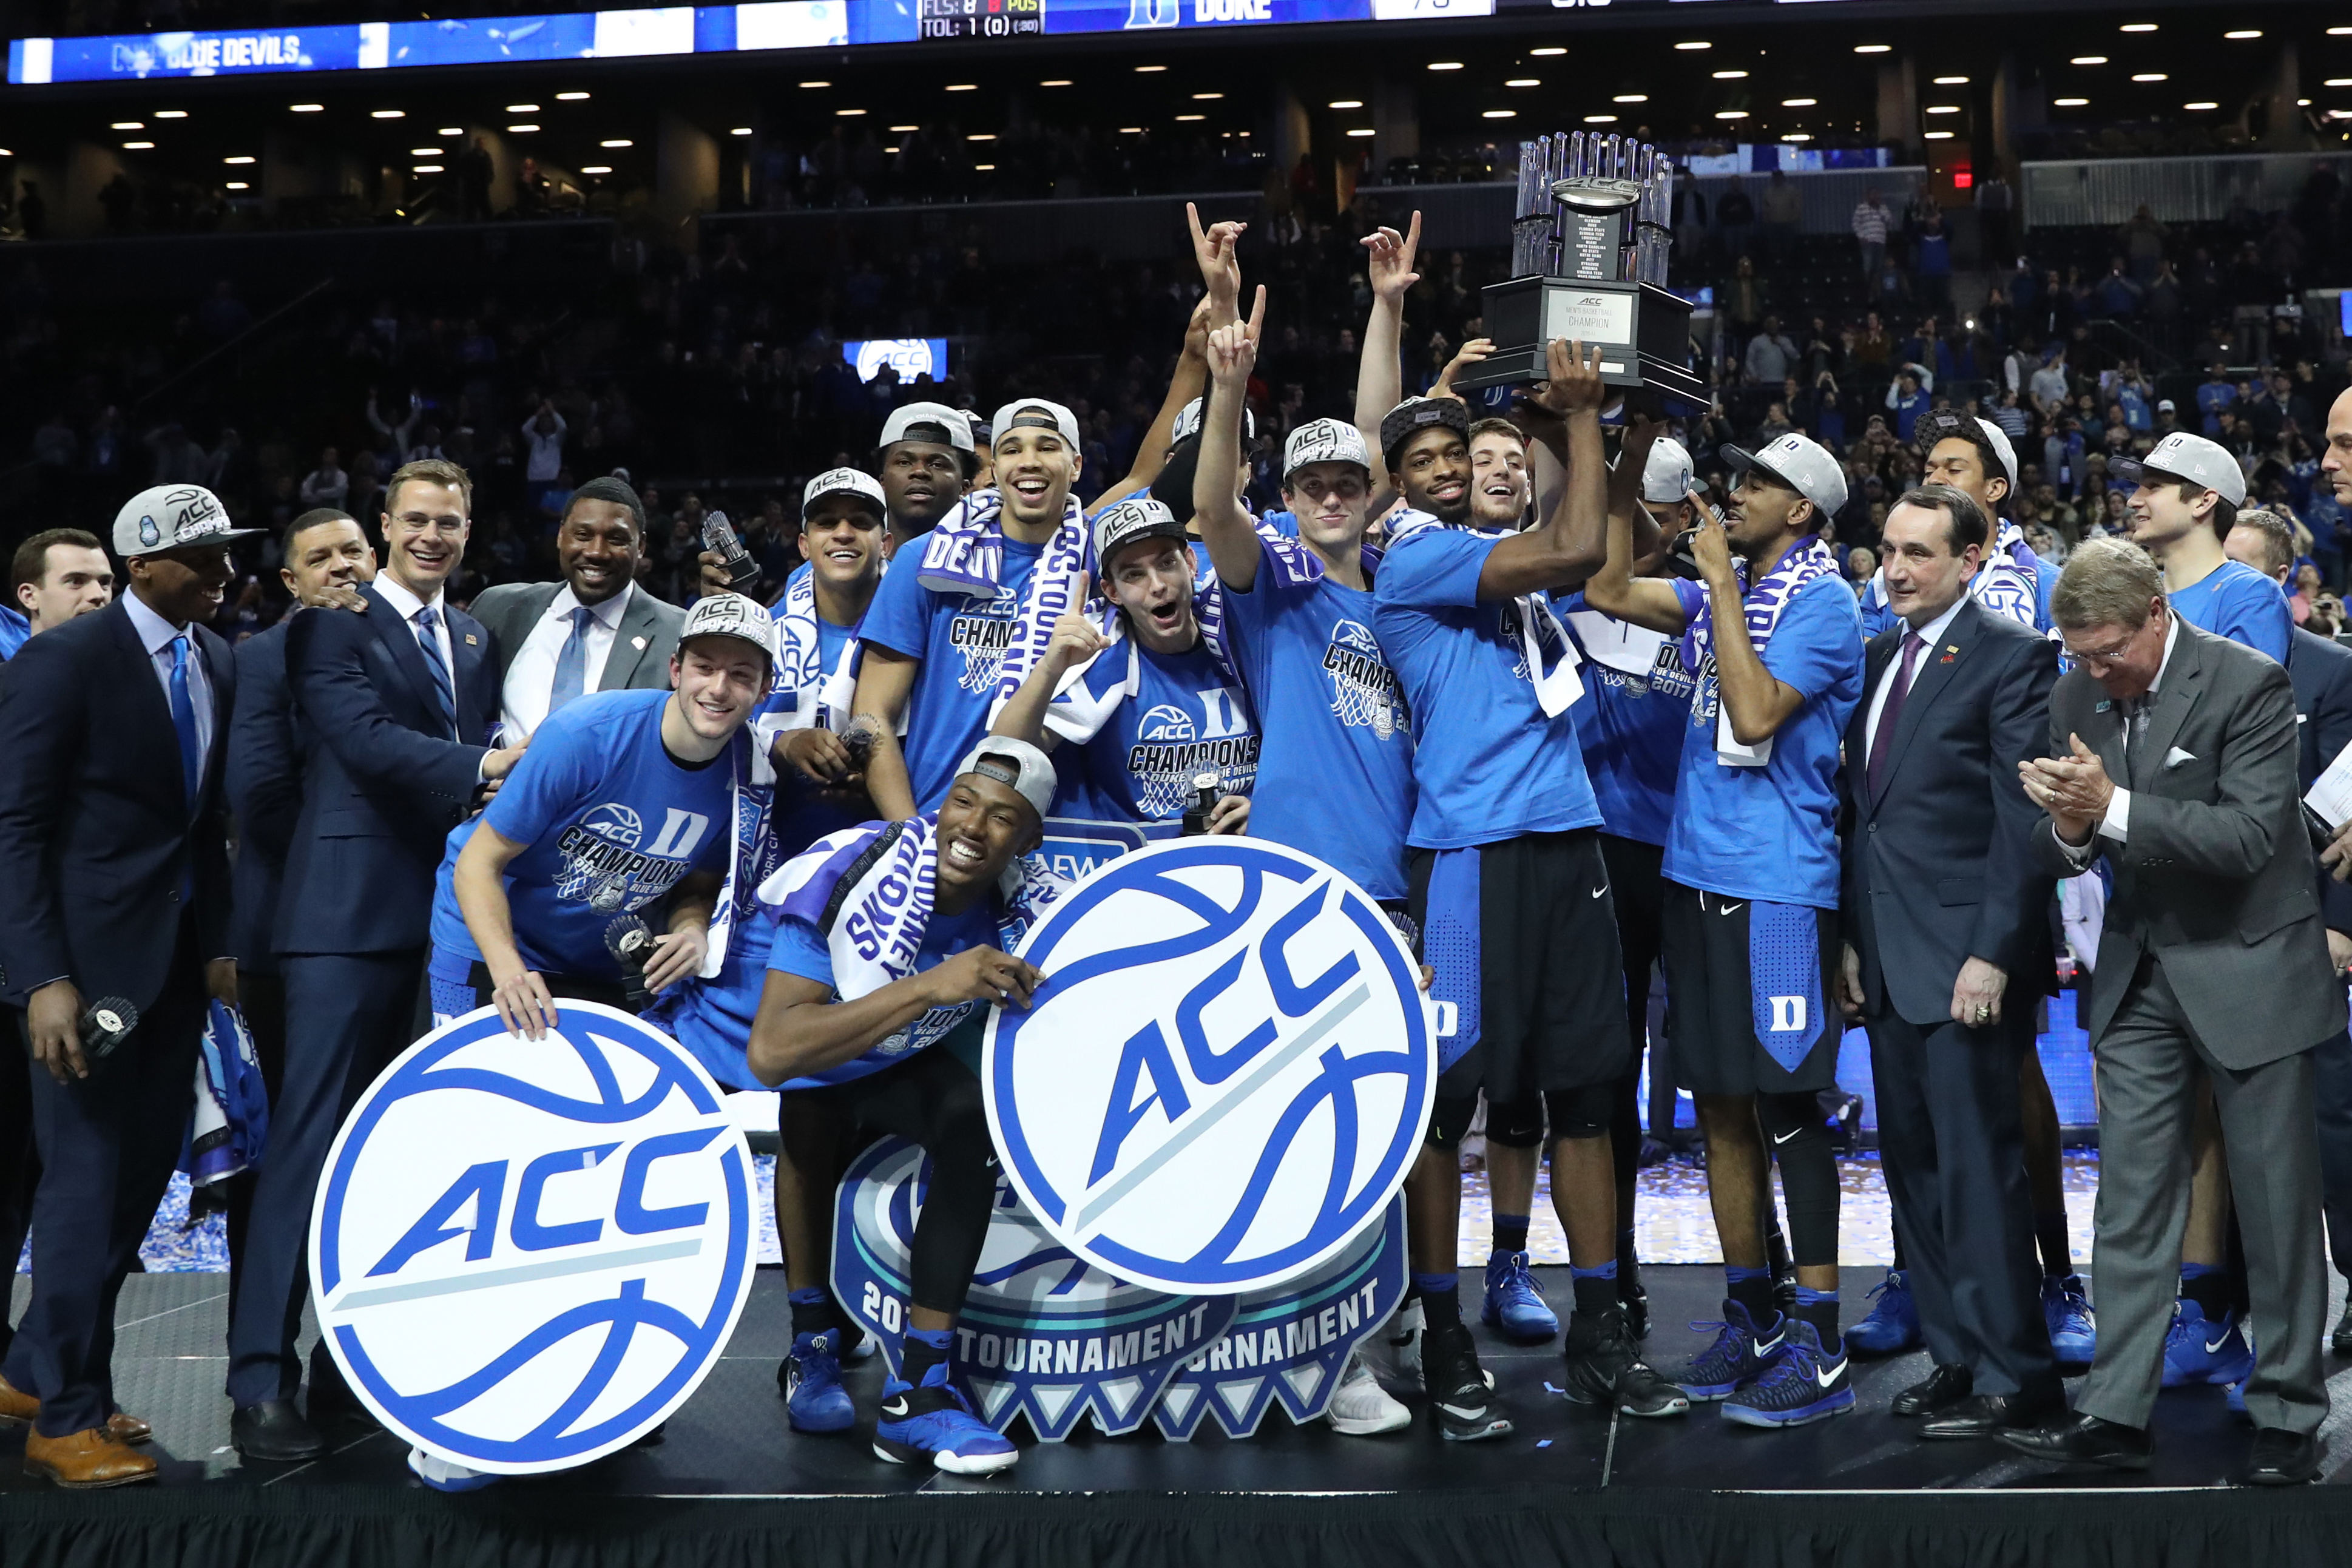 mar 11 2017 brooklyn ny usa duke blue devils players hold the championship trophy after defeating against the notre dame fighting irish during the acc